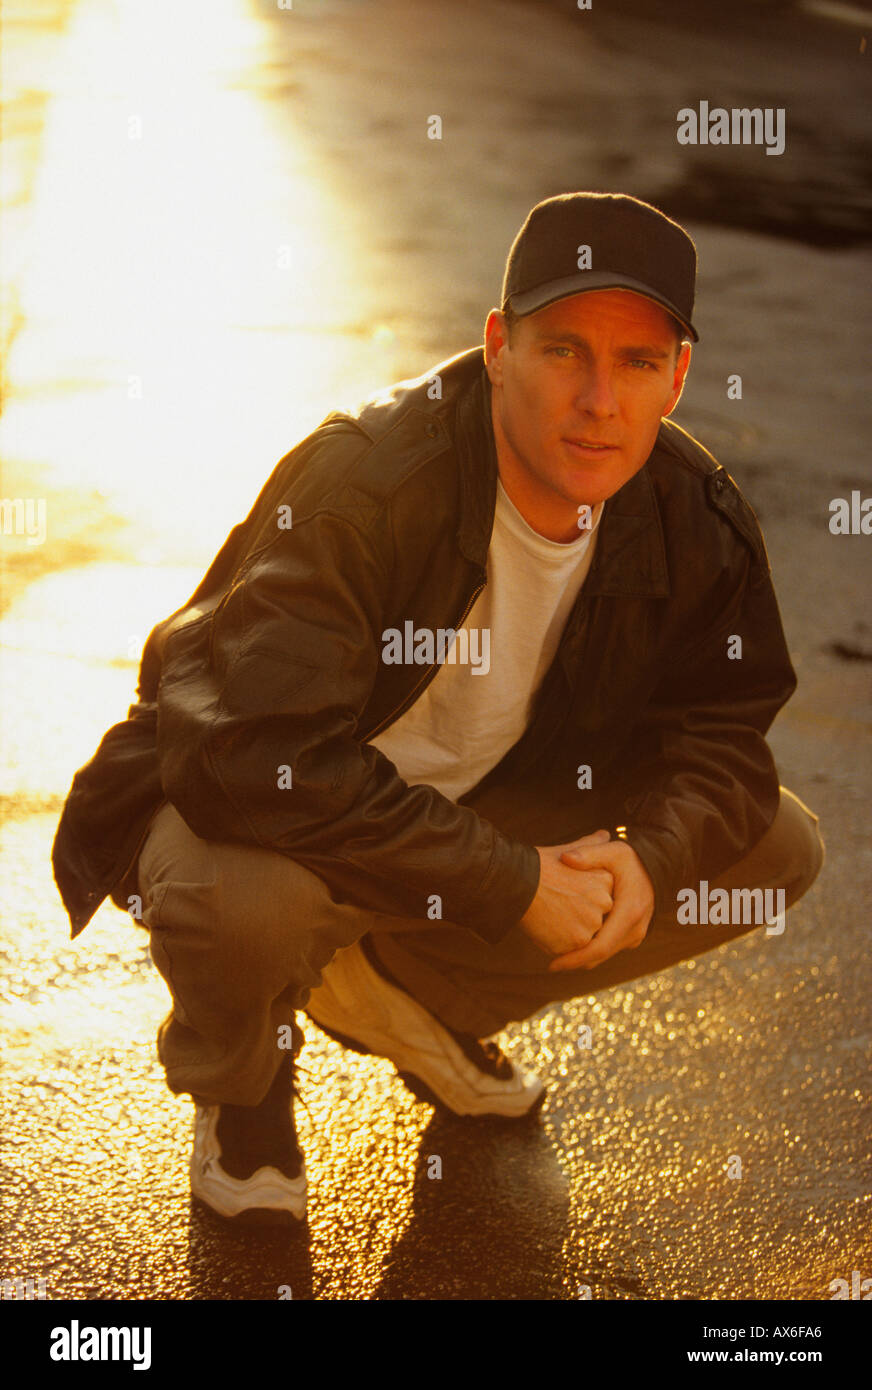 92feb53ee81 Portrait of a man wearing baseball cap in squatting position Stock ...